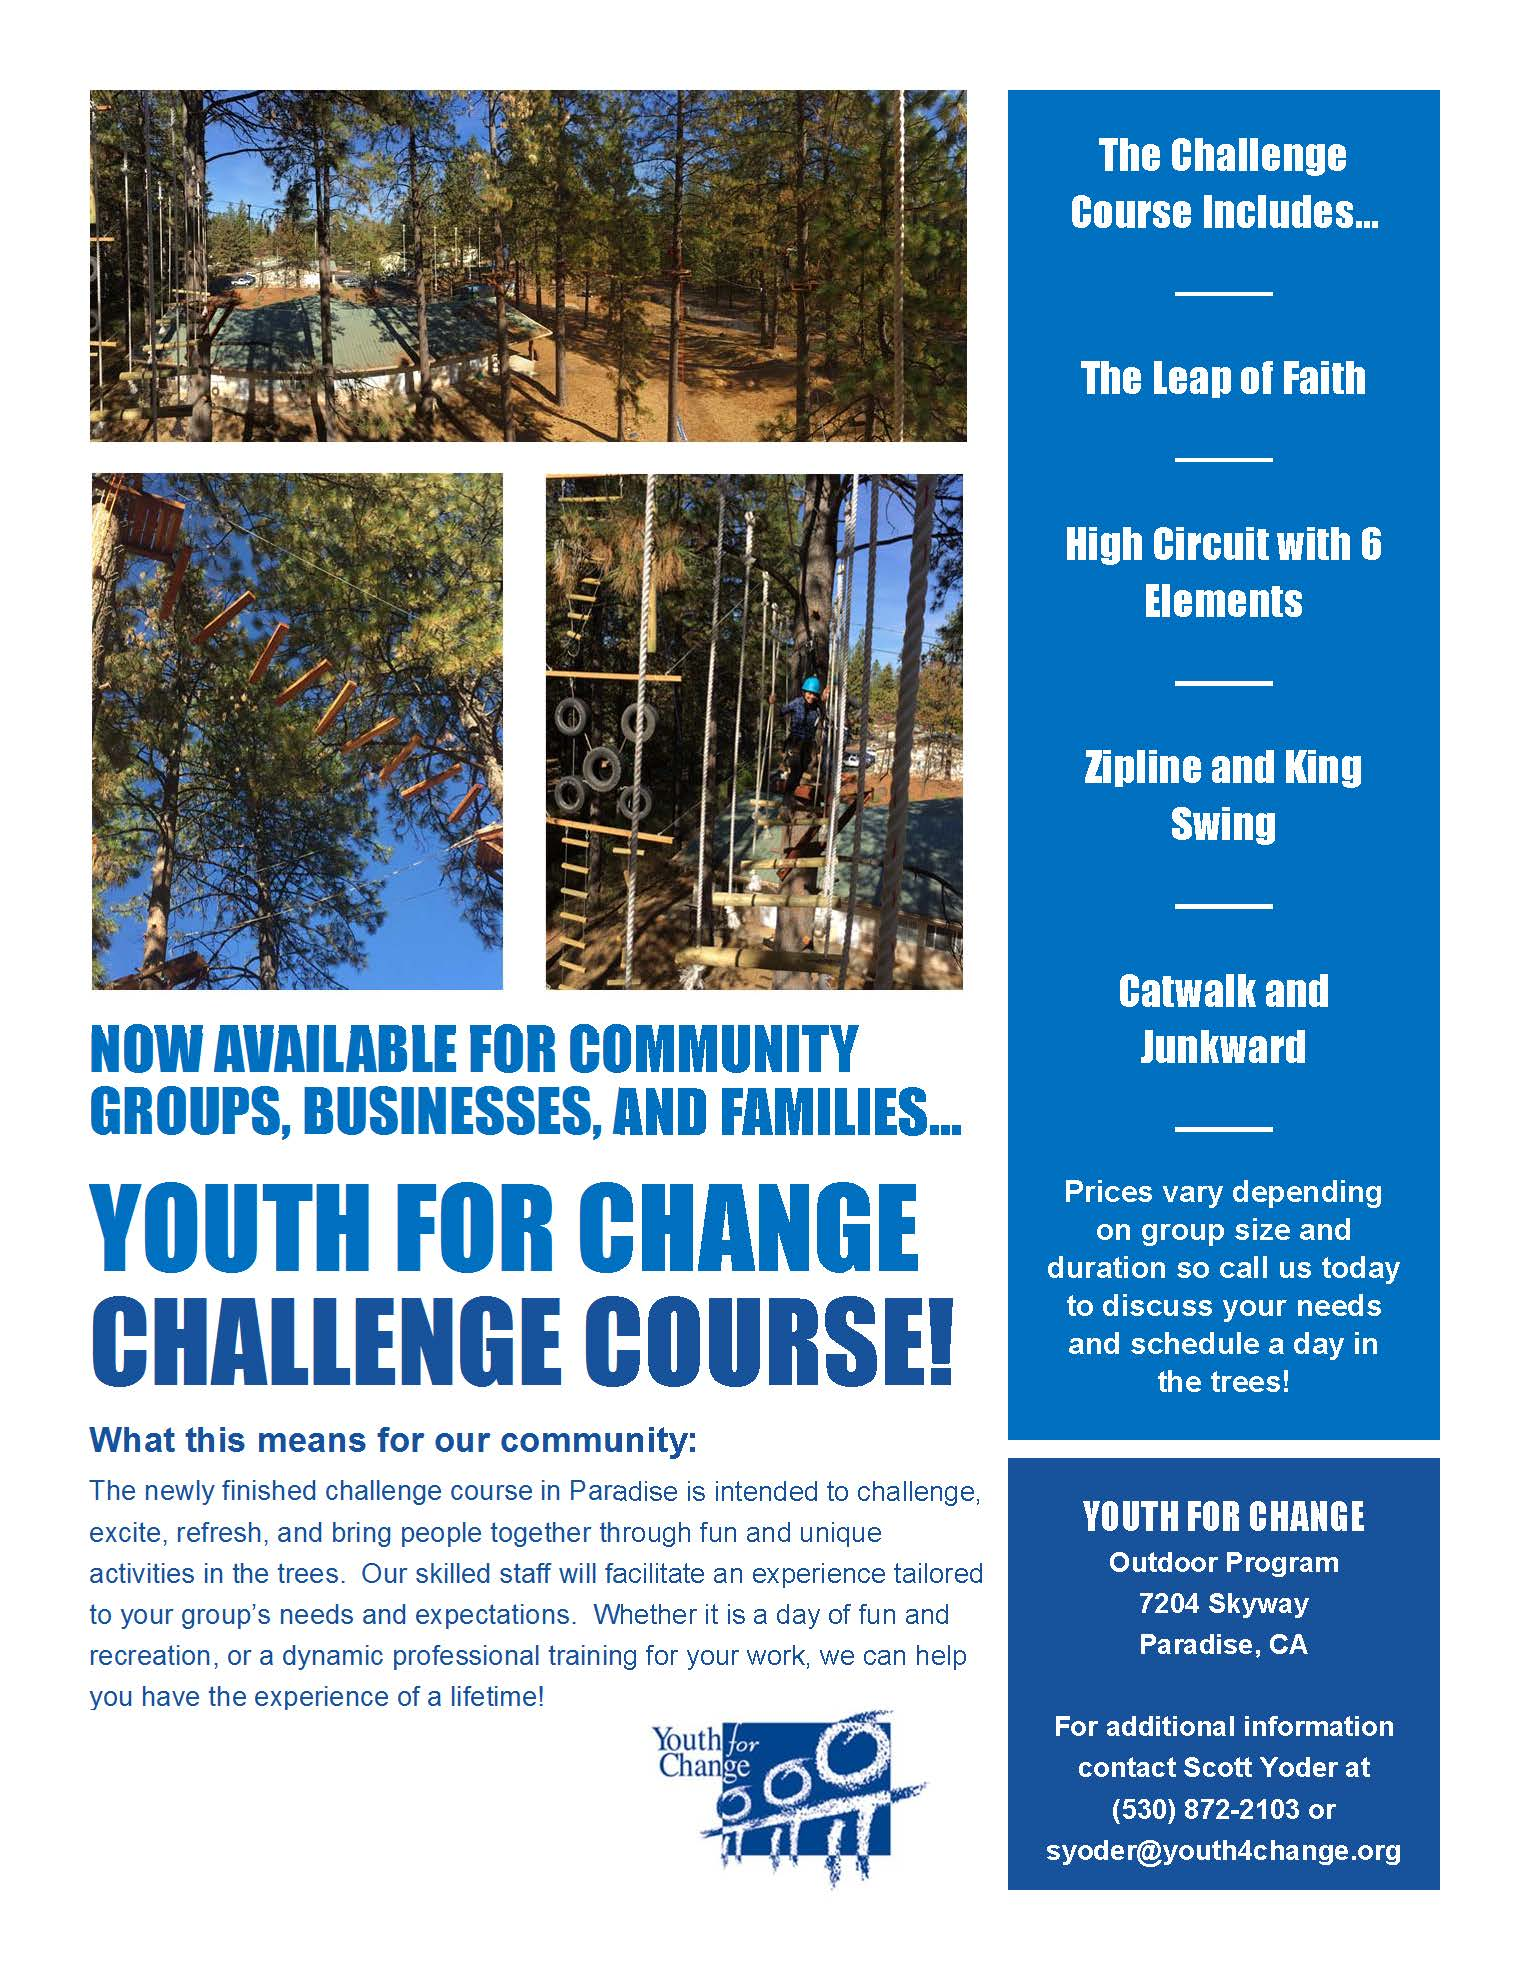 MC3-Challenge Course Flyer